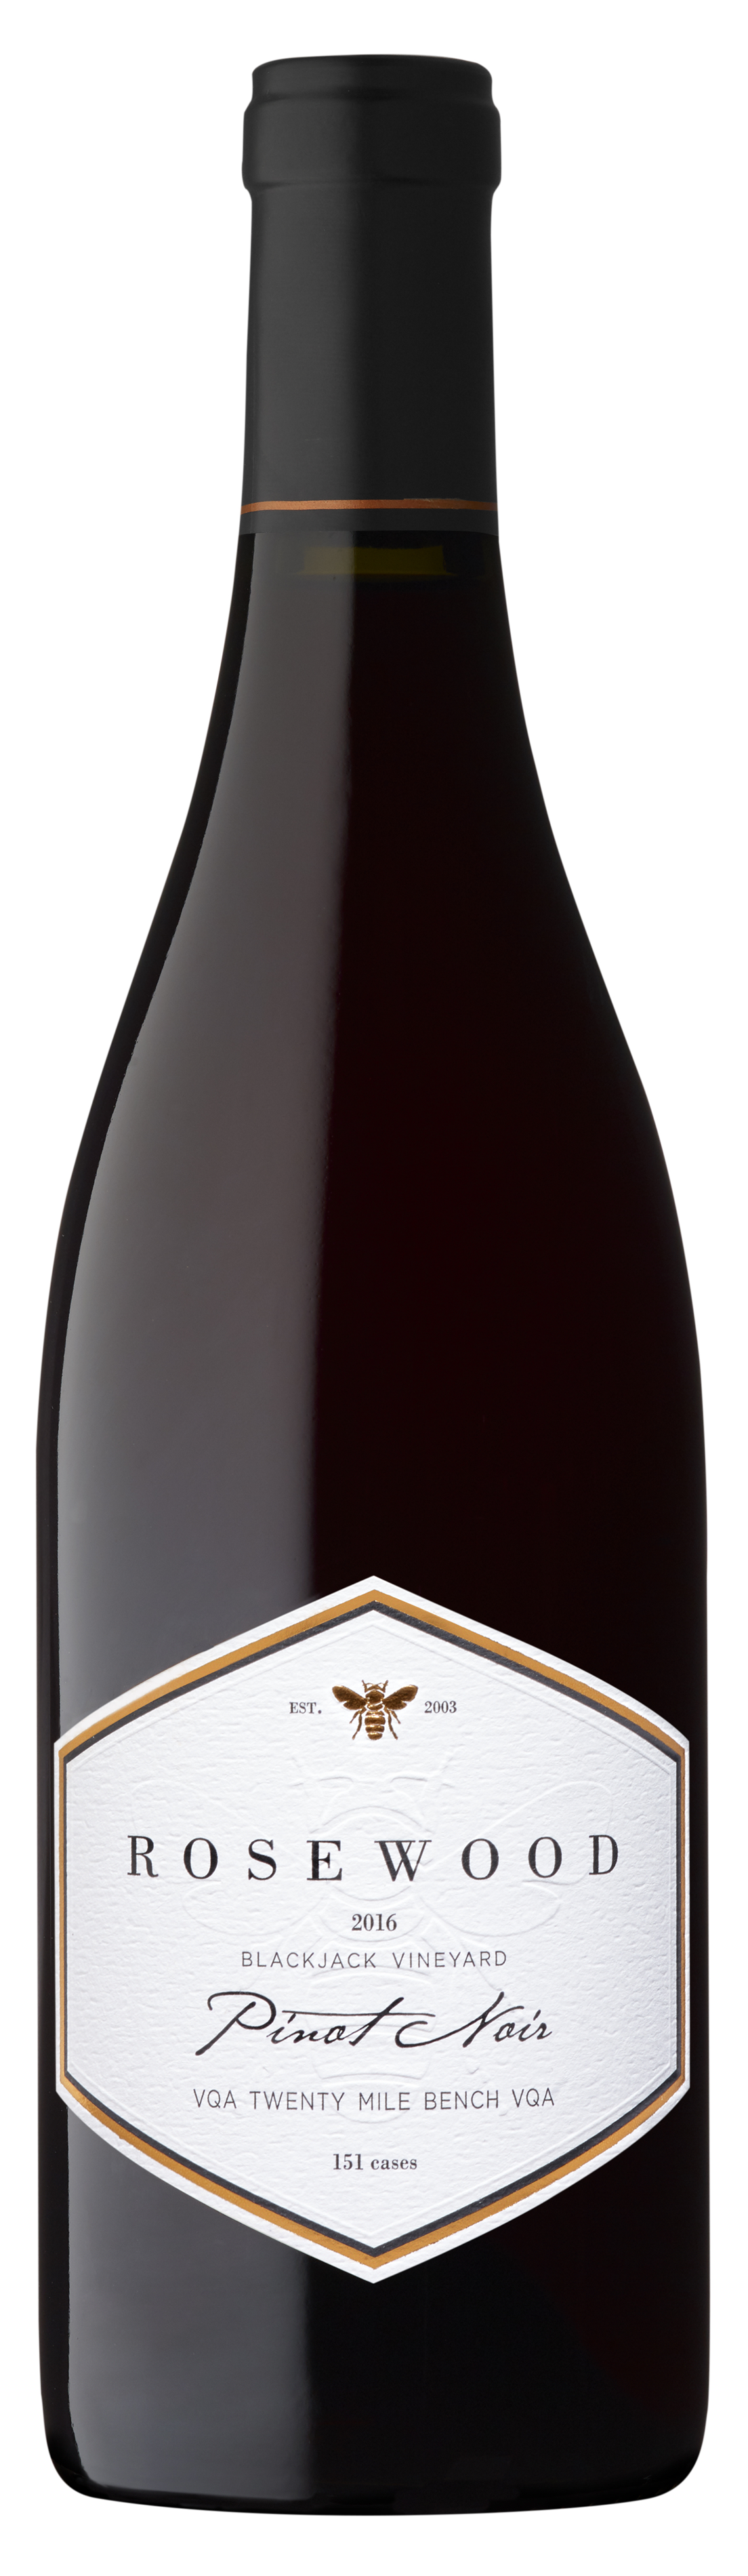 Blackjack Pinot Noir